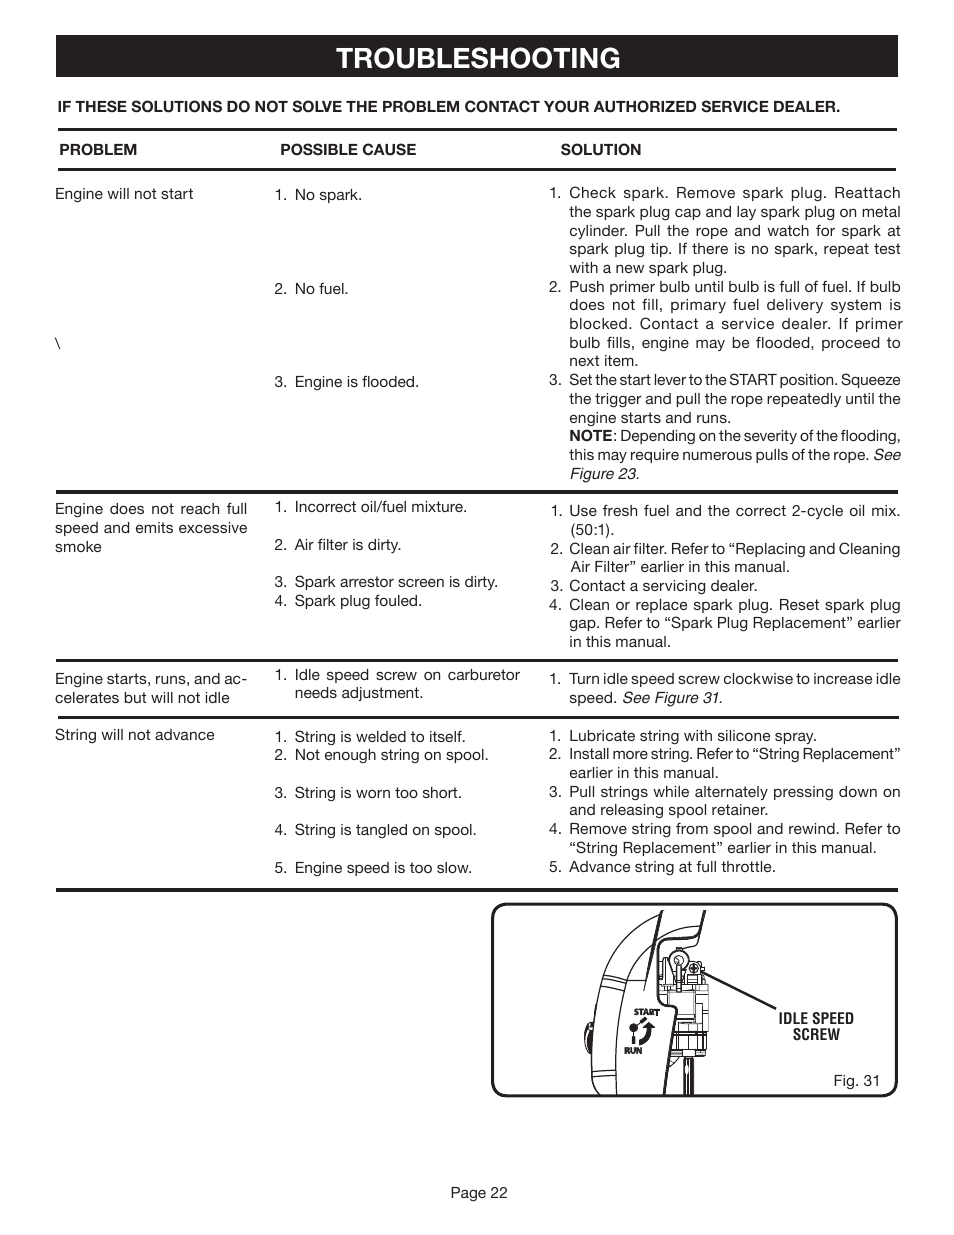 Ryobi Manuals Cs30 Electronics Hobby Circuits For Beginner39s February 2012 Array Troubleshooting Ry30020b User Manual Page 22 26 Rh Manualsdir